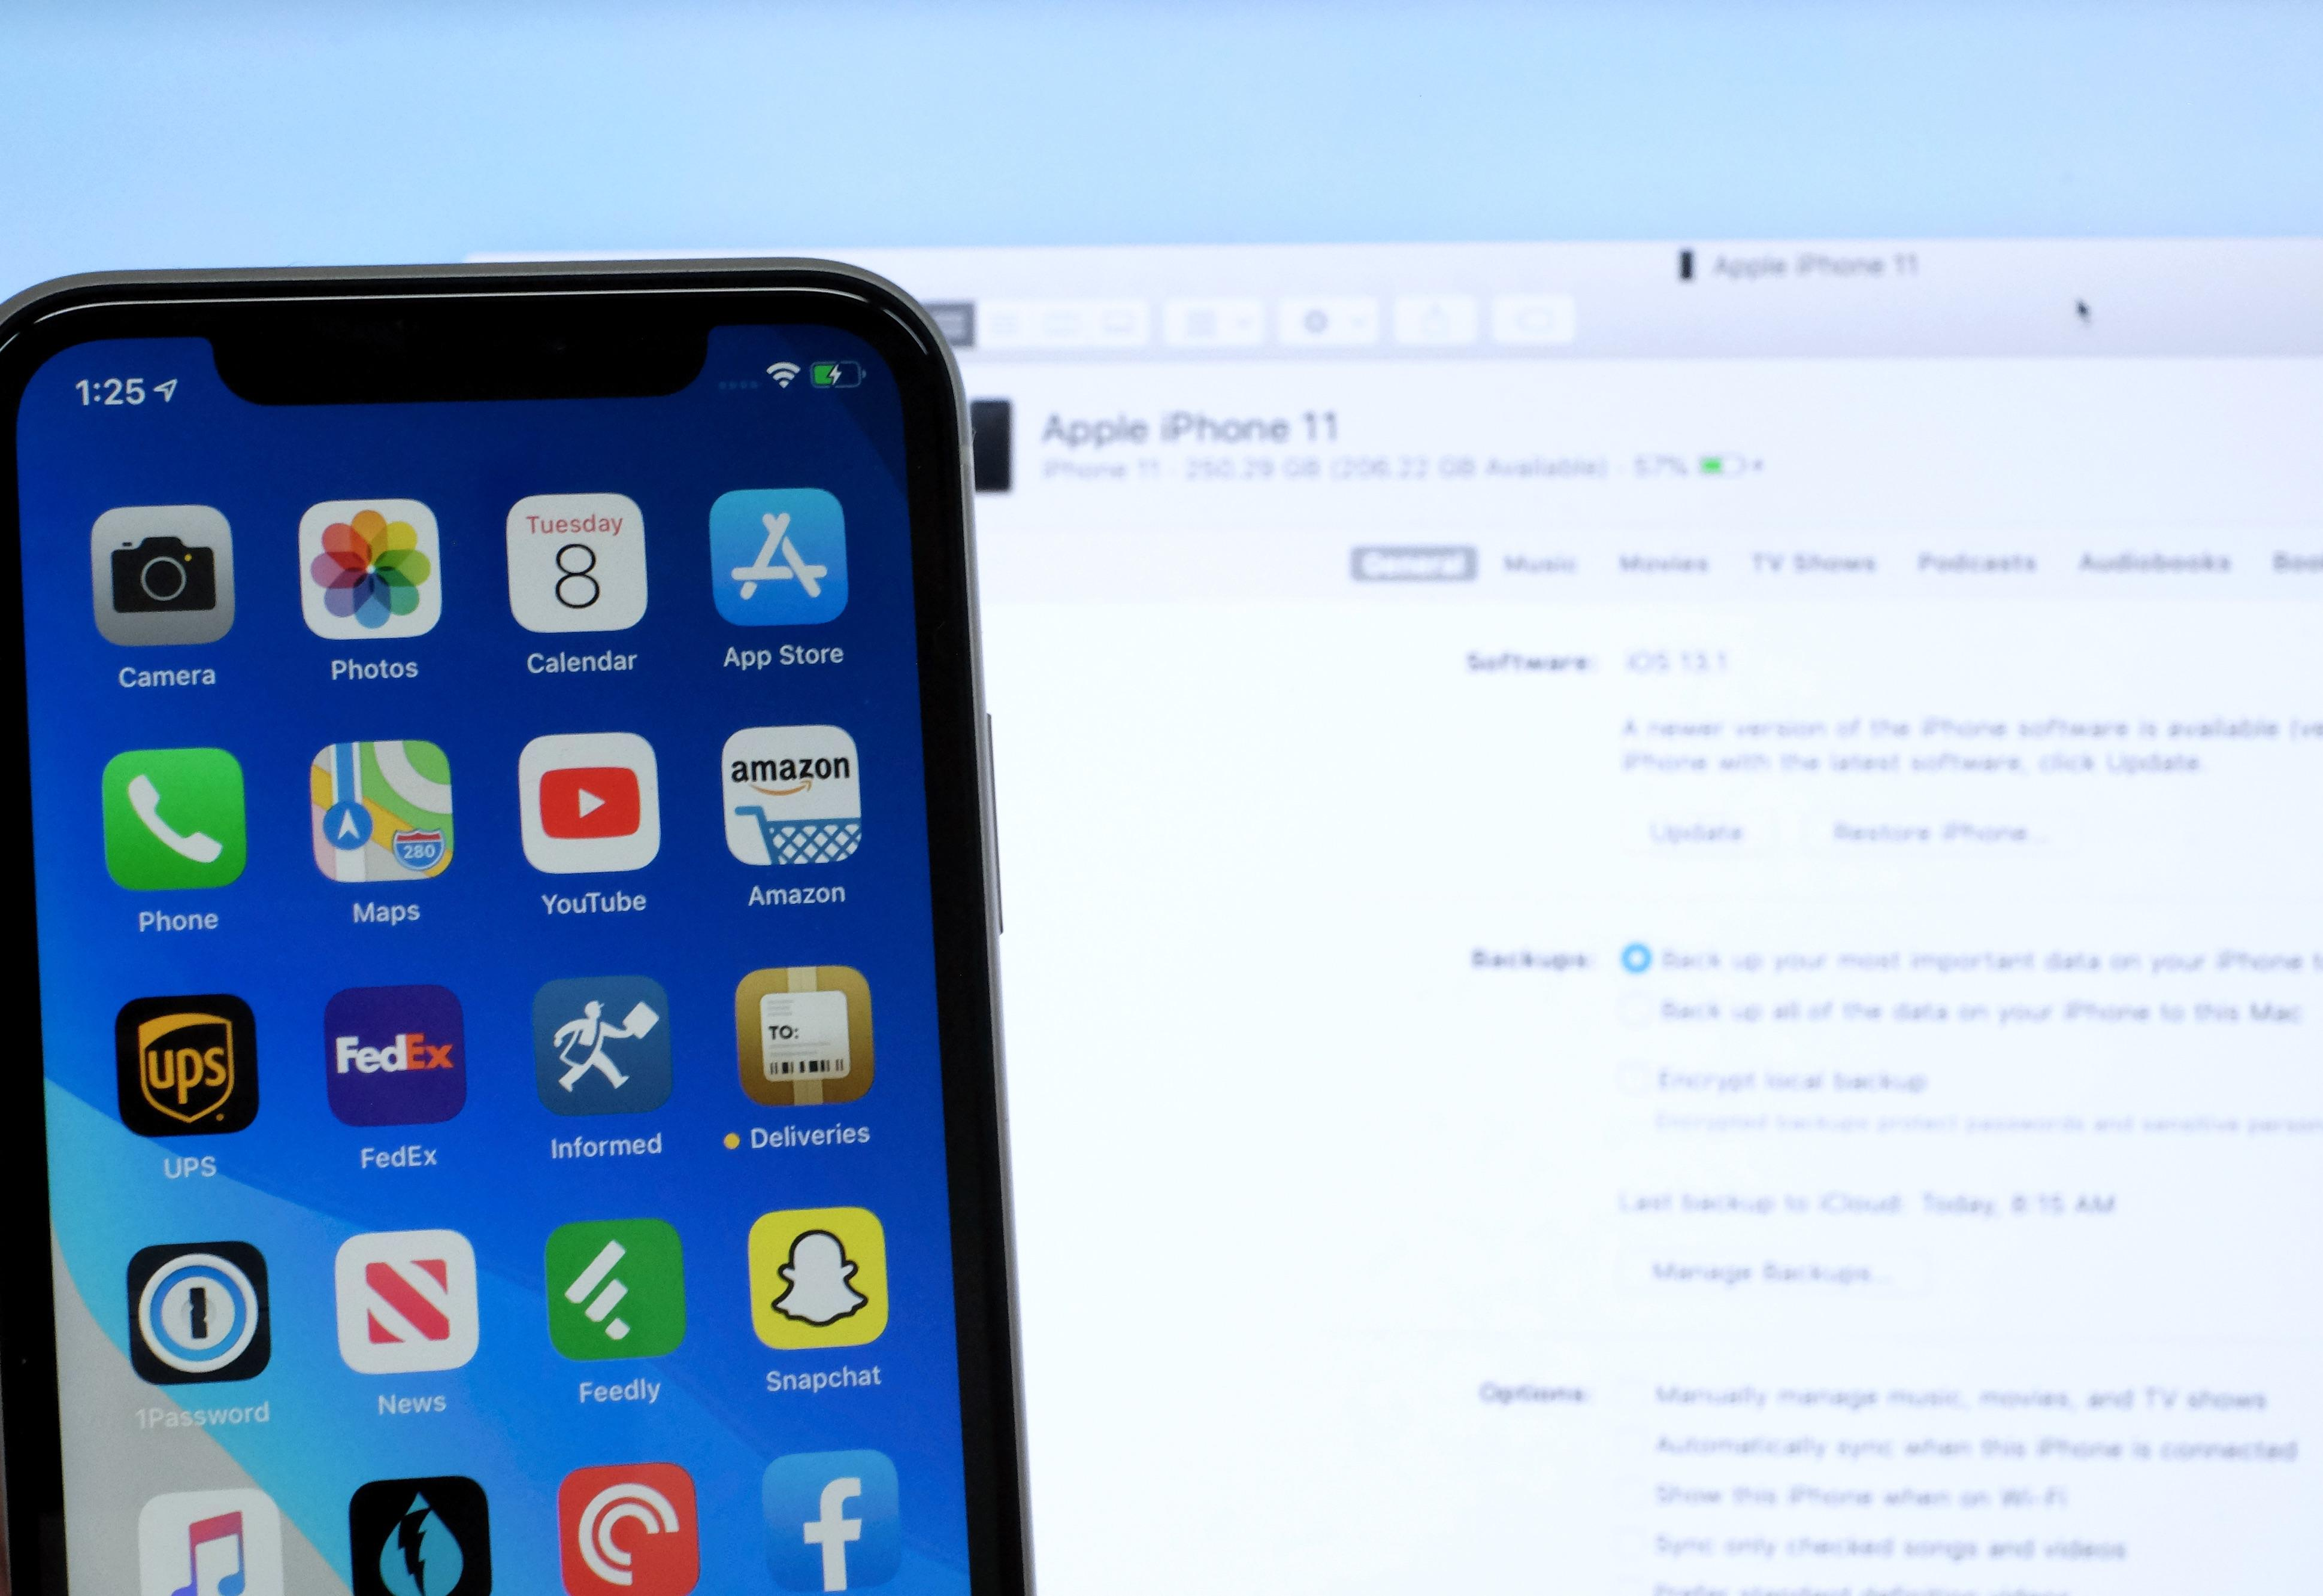 iphone-11-syncing-with-finder